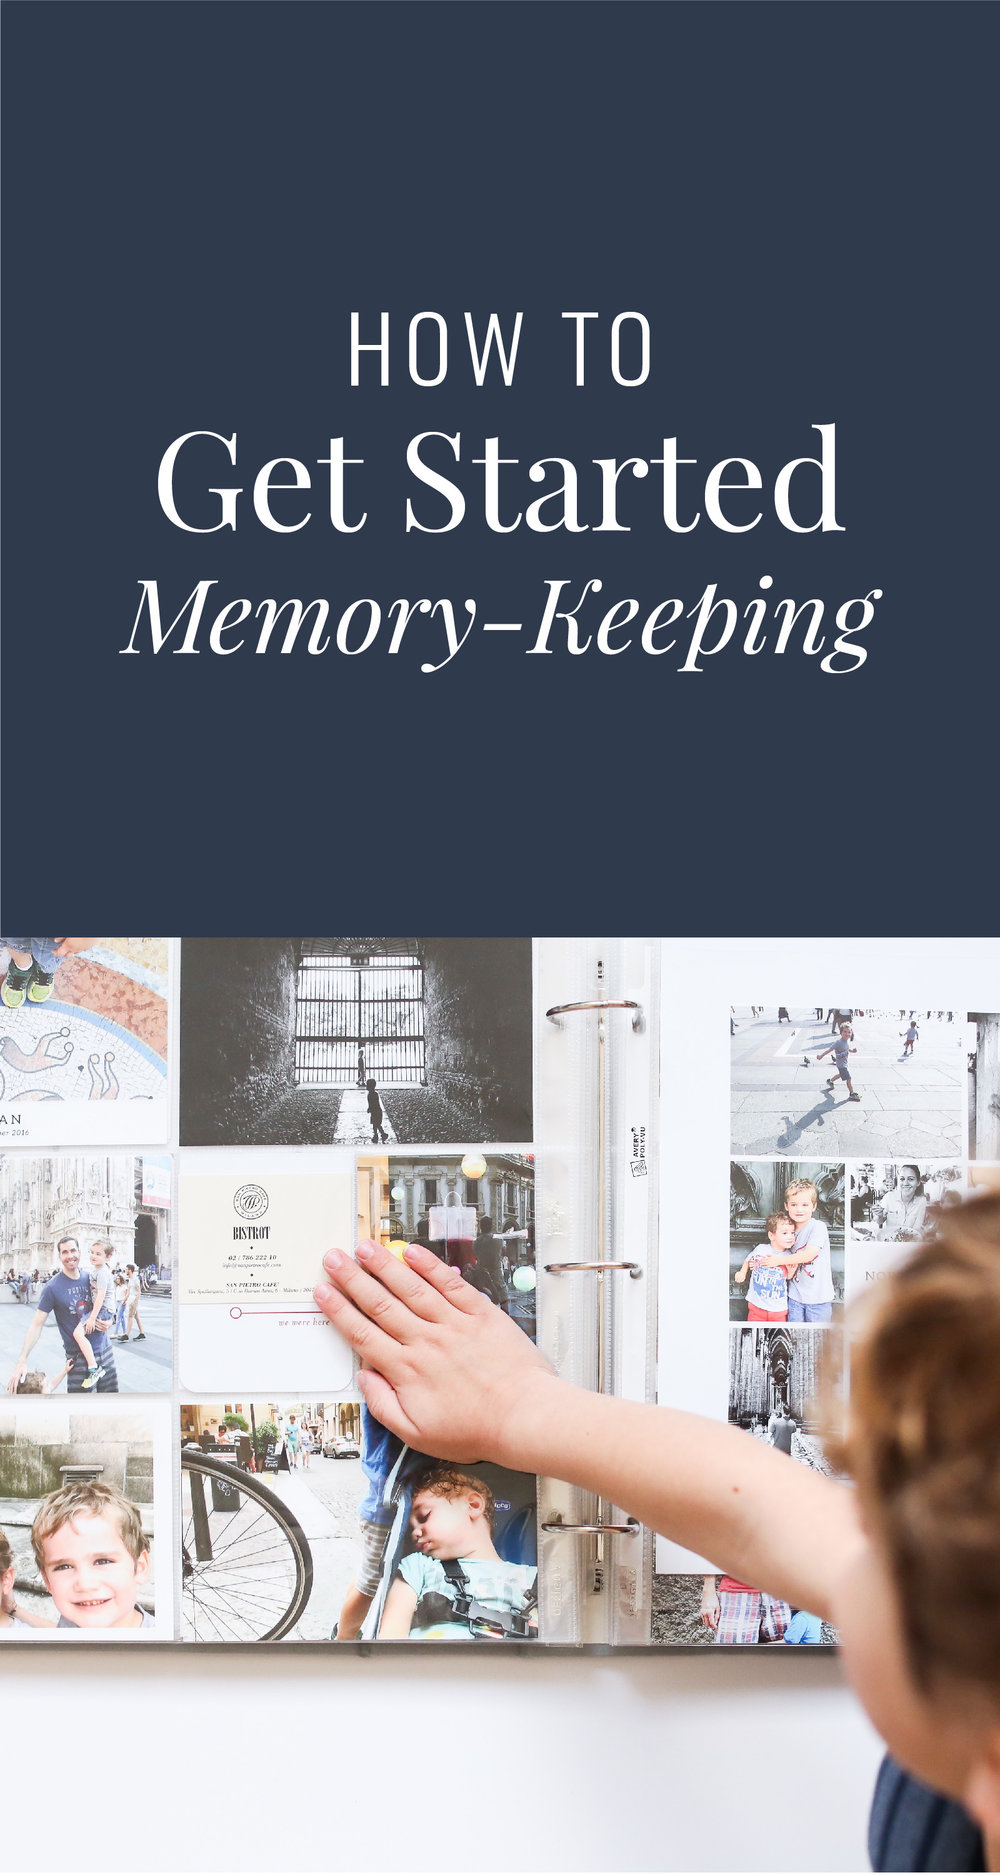 How to get started memory keeping - a detailed guide for managing your memories